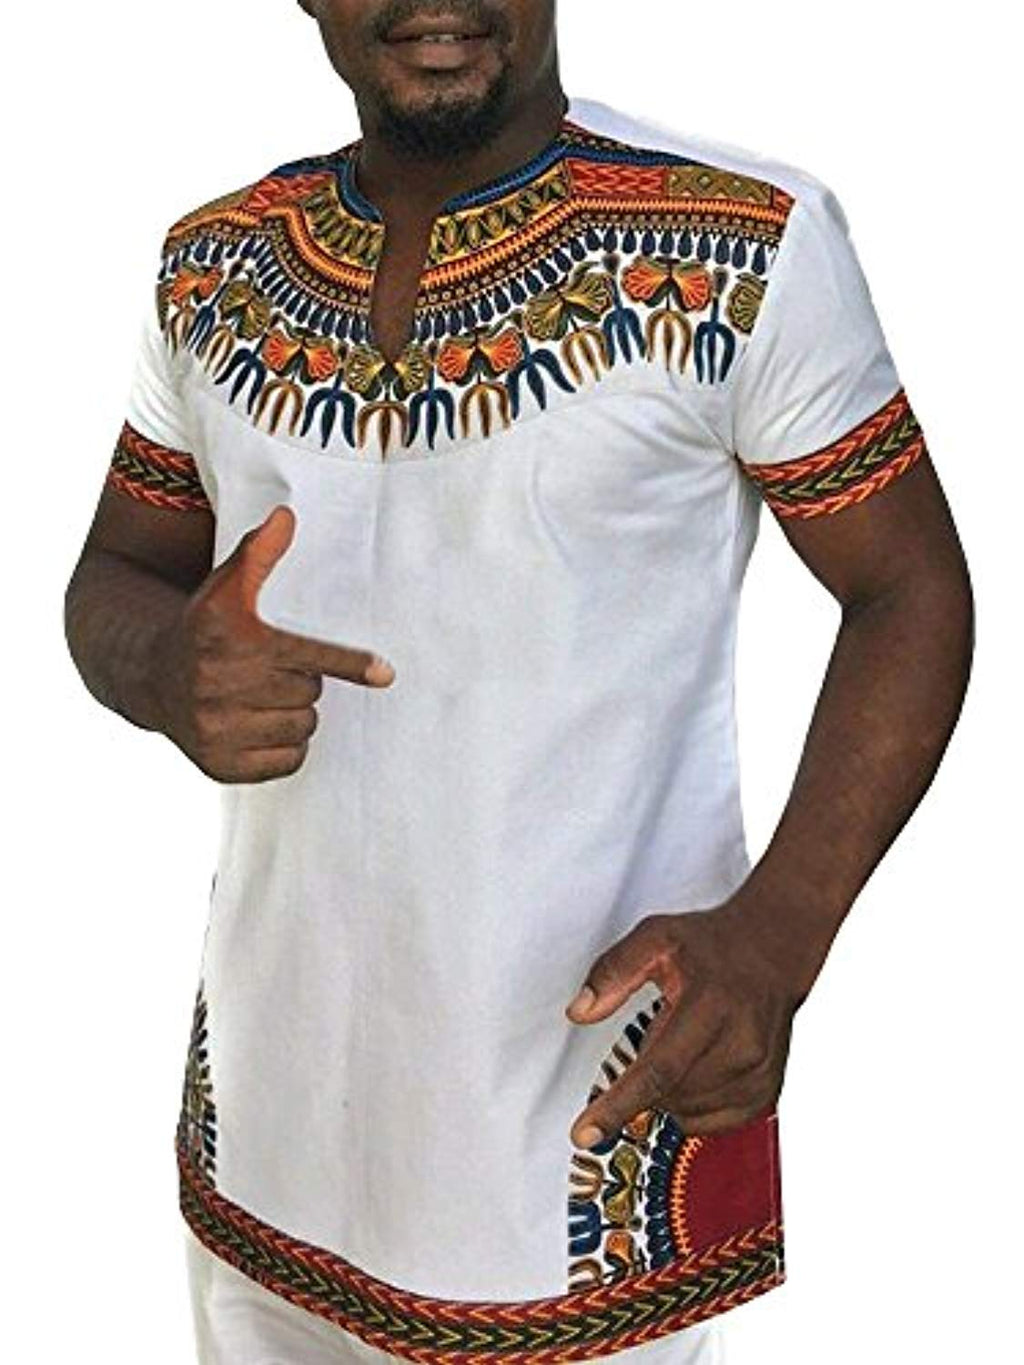 Gtealife Men's African Print Dashiki T-Shirt Tops Blouse - Ufumbuzi - Home